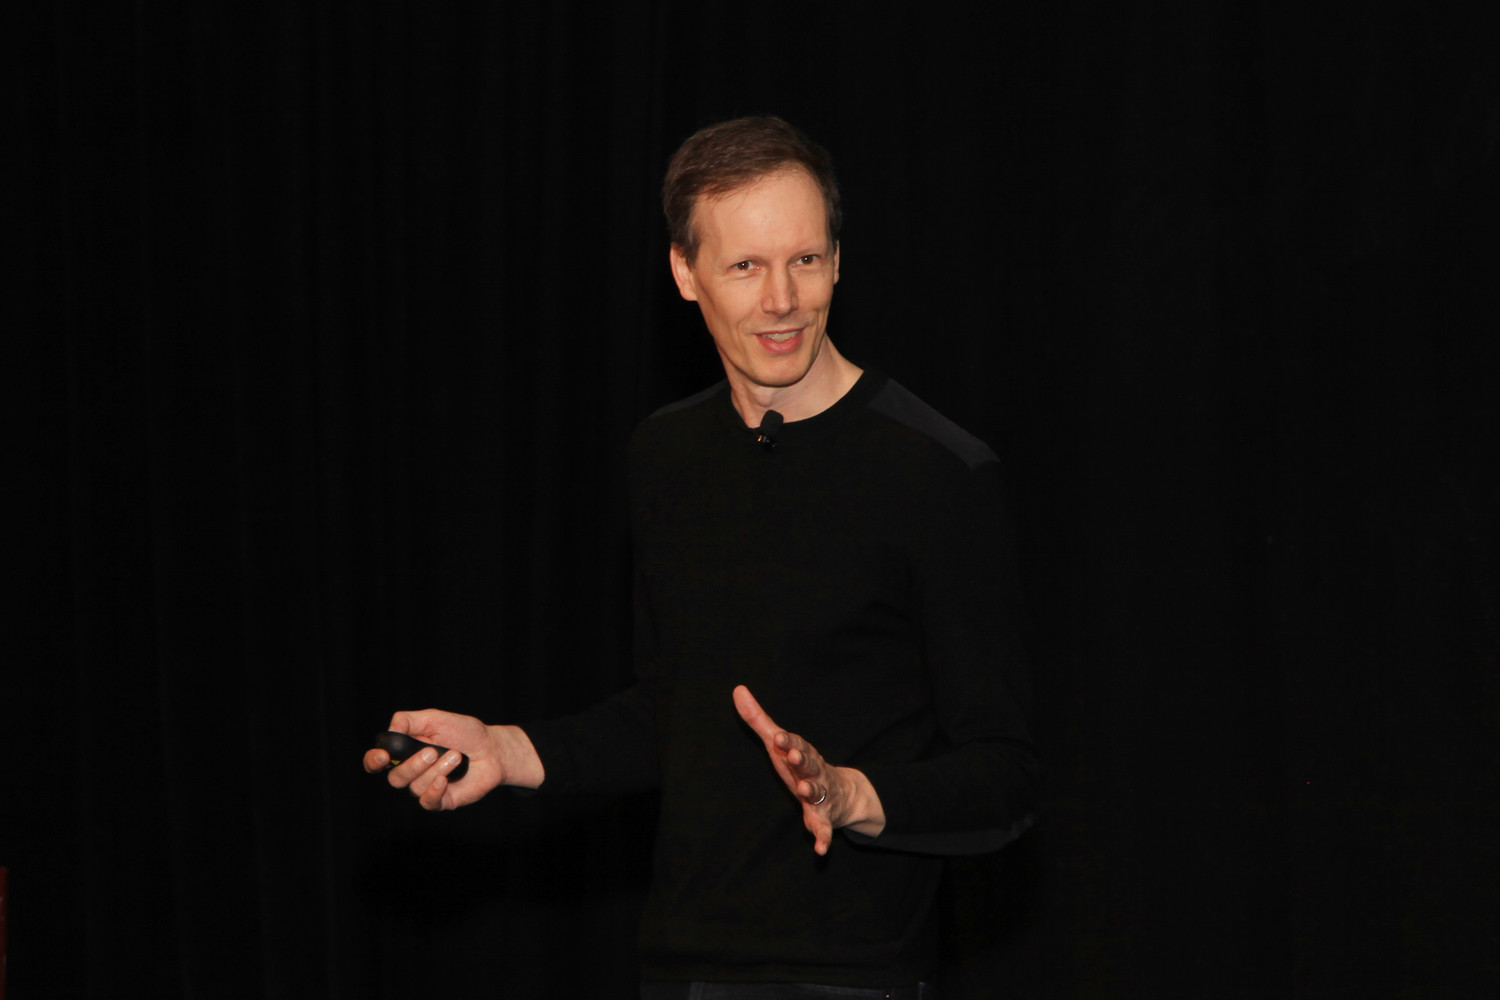 Jim McKelvey, founder and CEO, McKelvey Project, and co-founder of Square, discusses a revolutionary digital content payment method for content creators of all types.